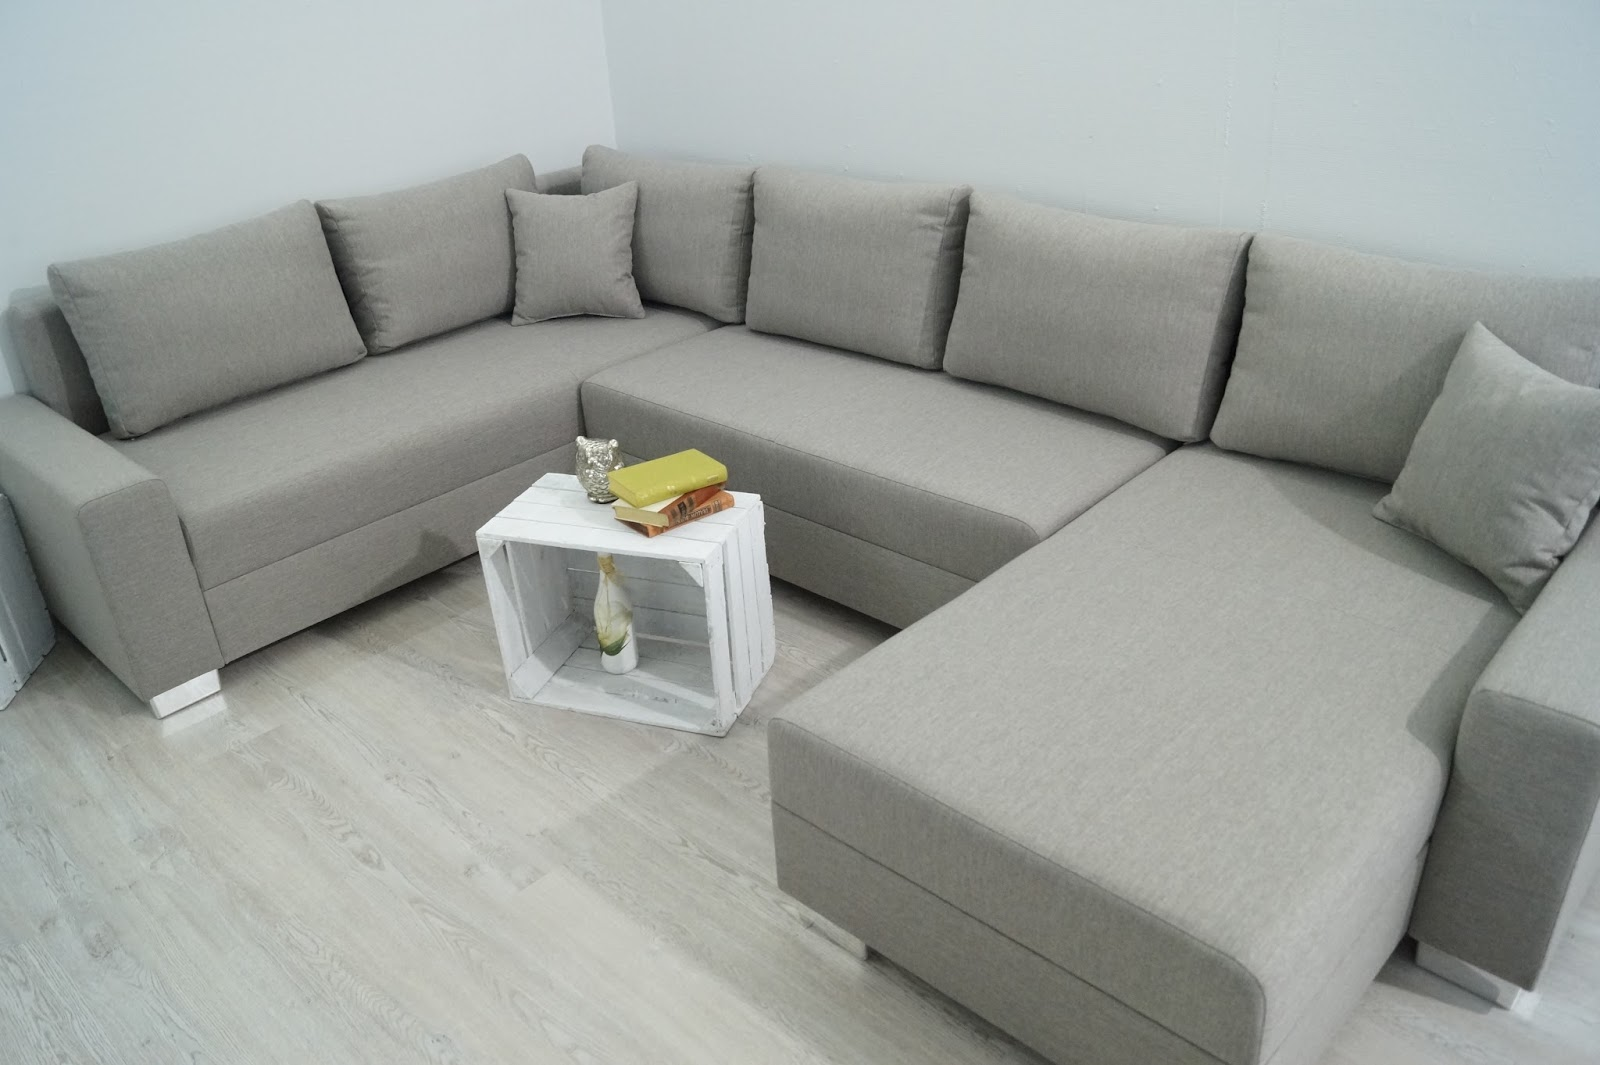 Bettsofa Xl Xl Sofa De